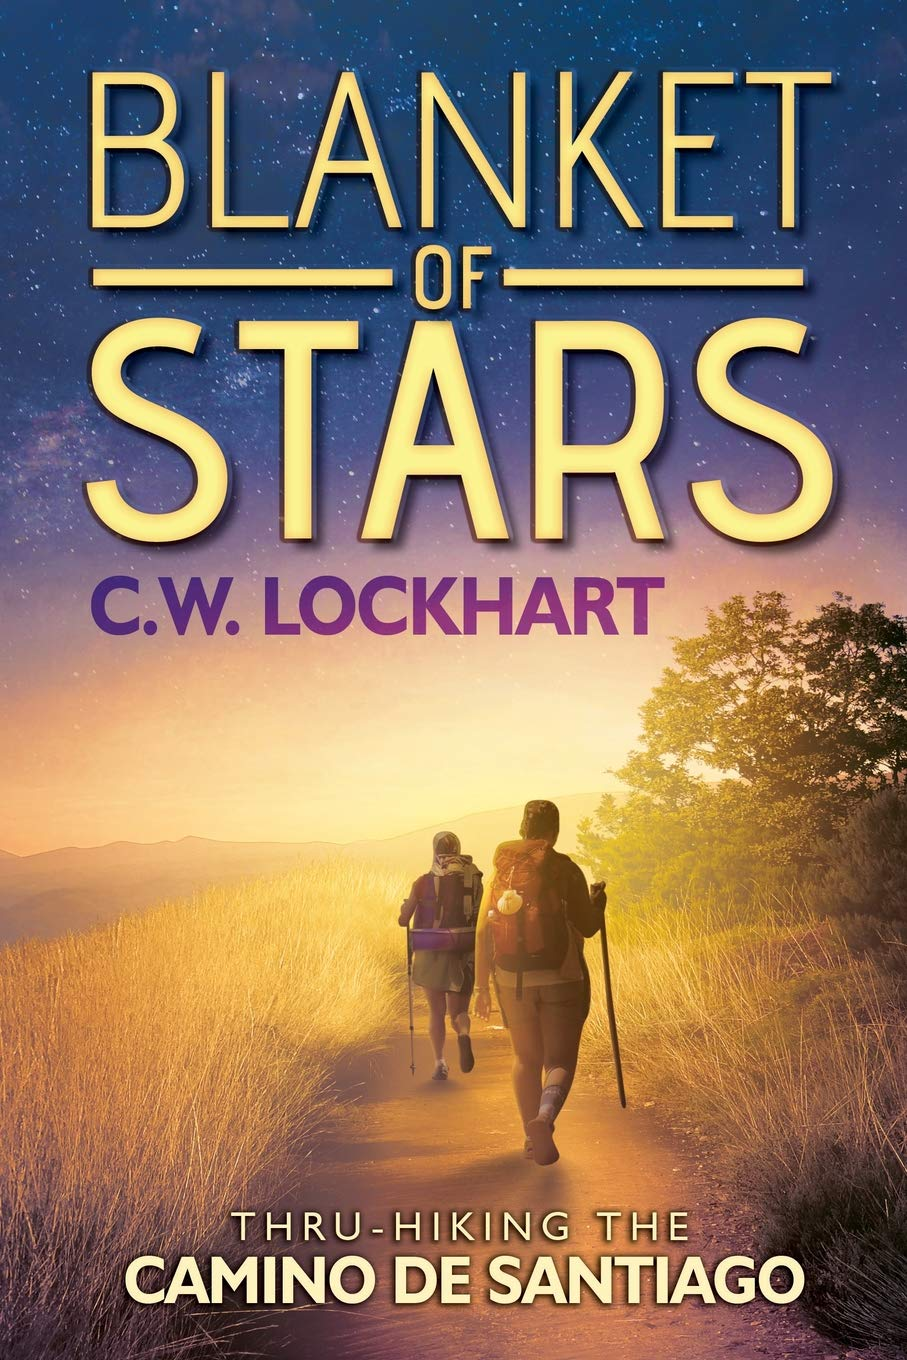 Blanket of Stars: Thru-Hiking the Camino de Santiago (Travel Adventures)  (Volume 1): C.W. Lockhart: 9780692072073: Amazon.com: Books